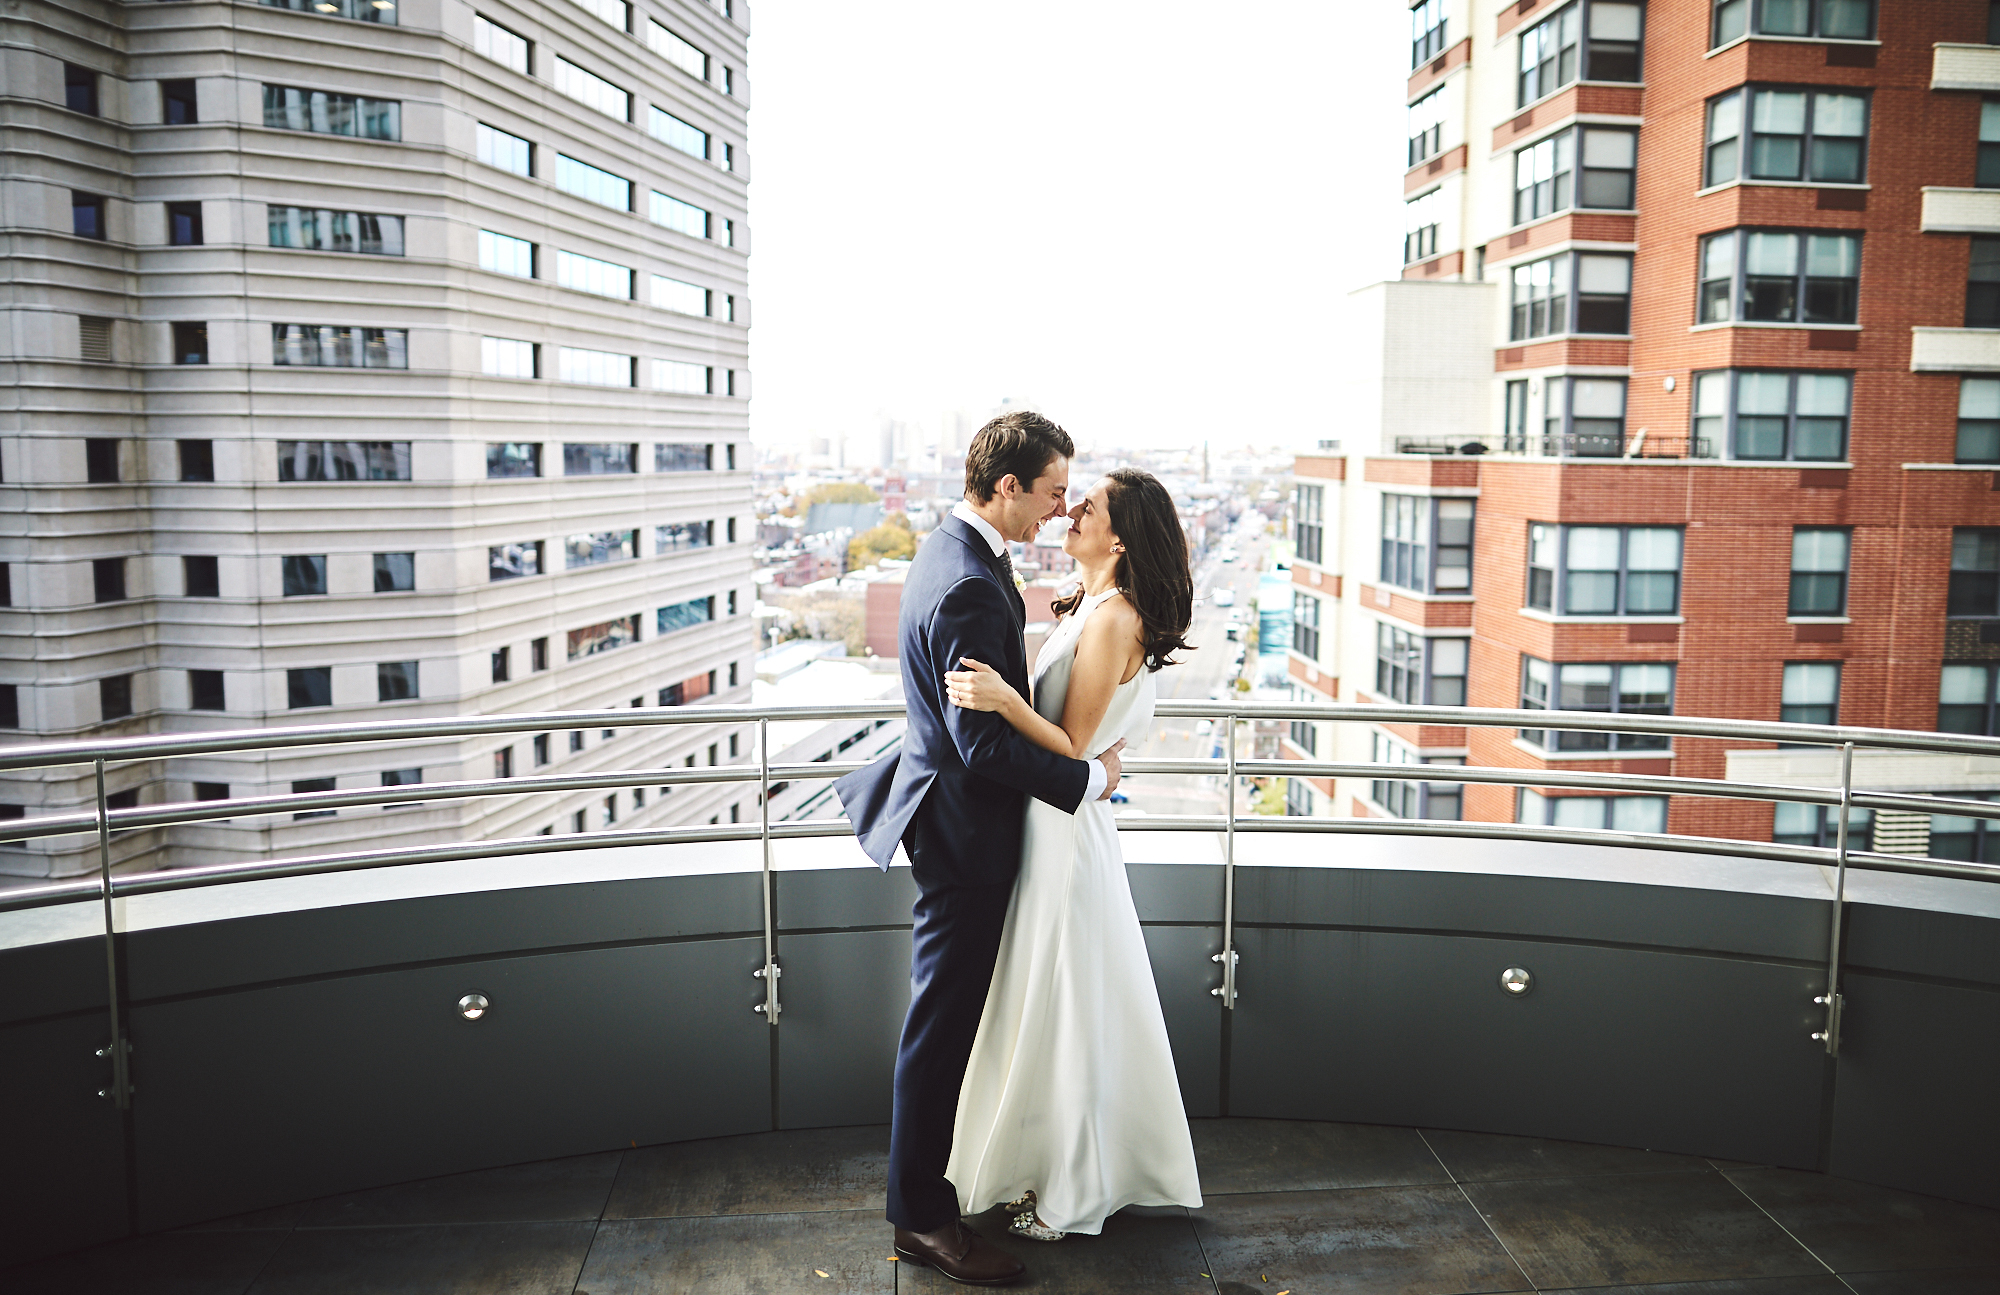 181116_JerseyCityCityHallFallWeddingPhotography_JerseyCityWeddingPhotographer_By_BriJohnsonWeddings_0044.jpg